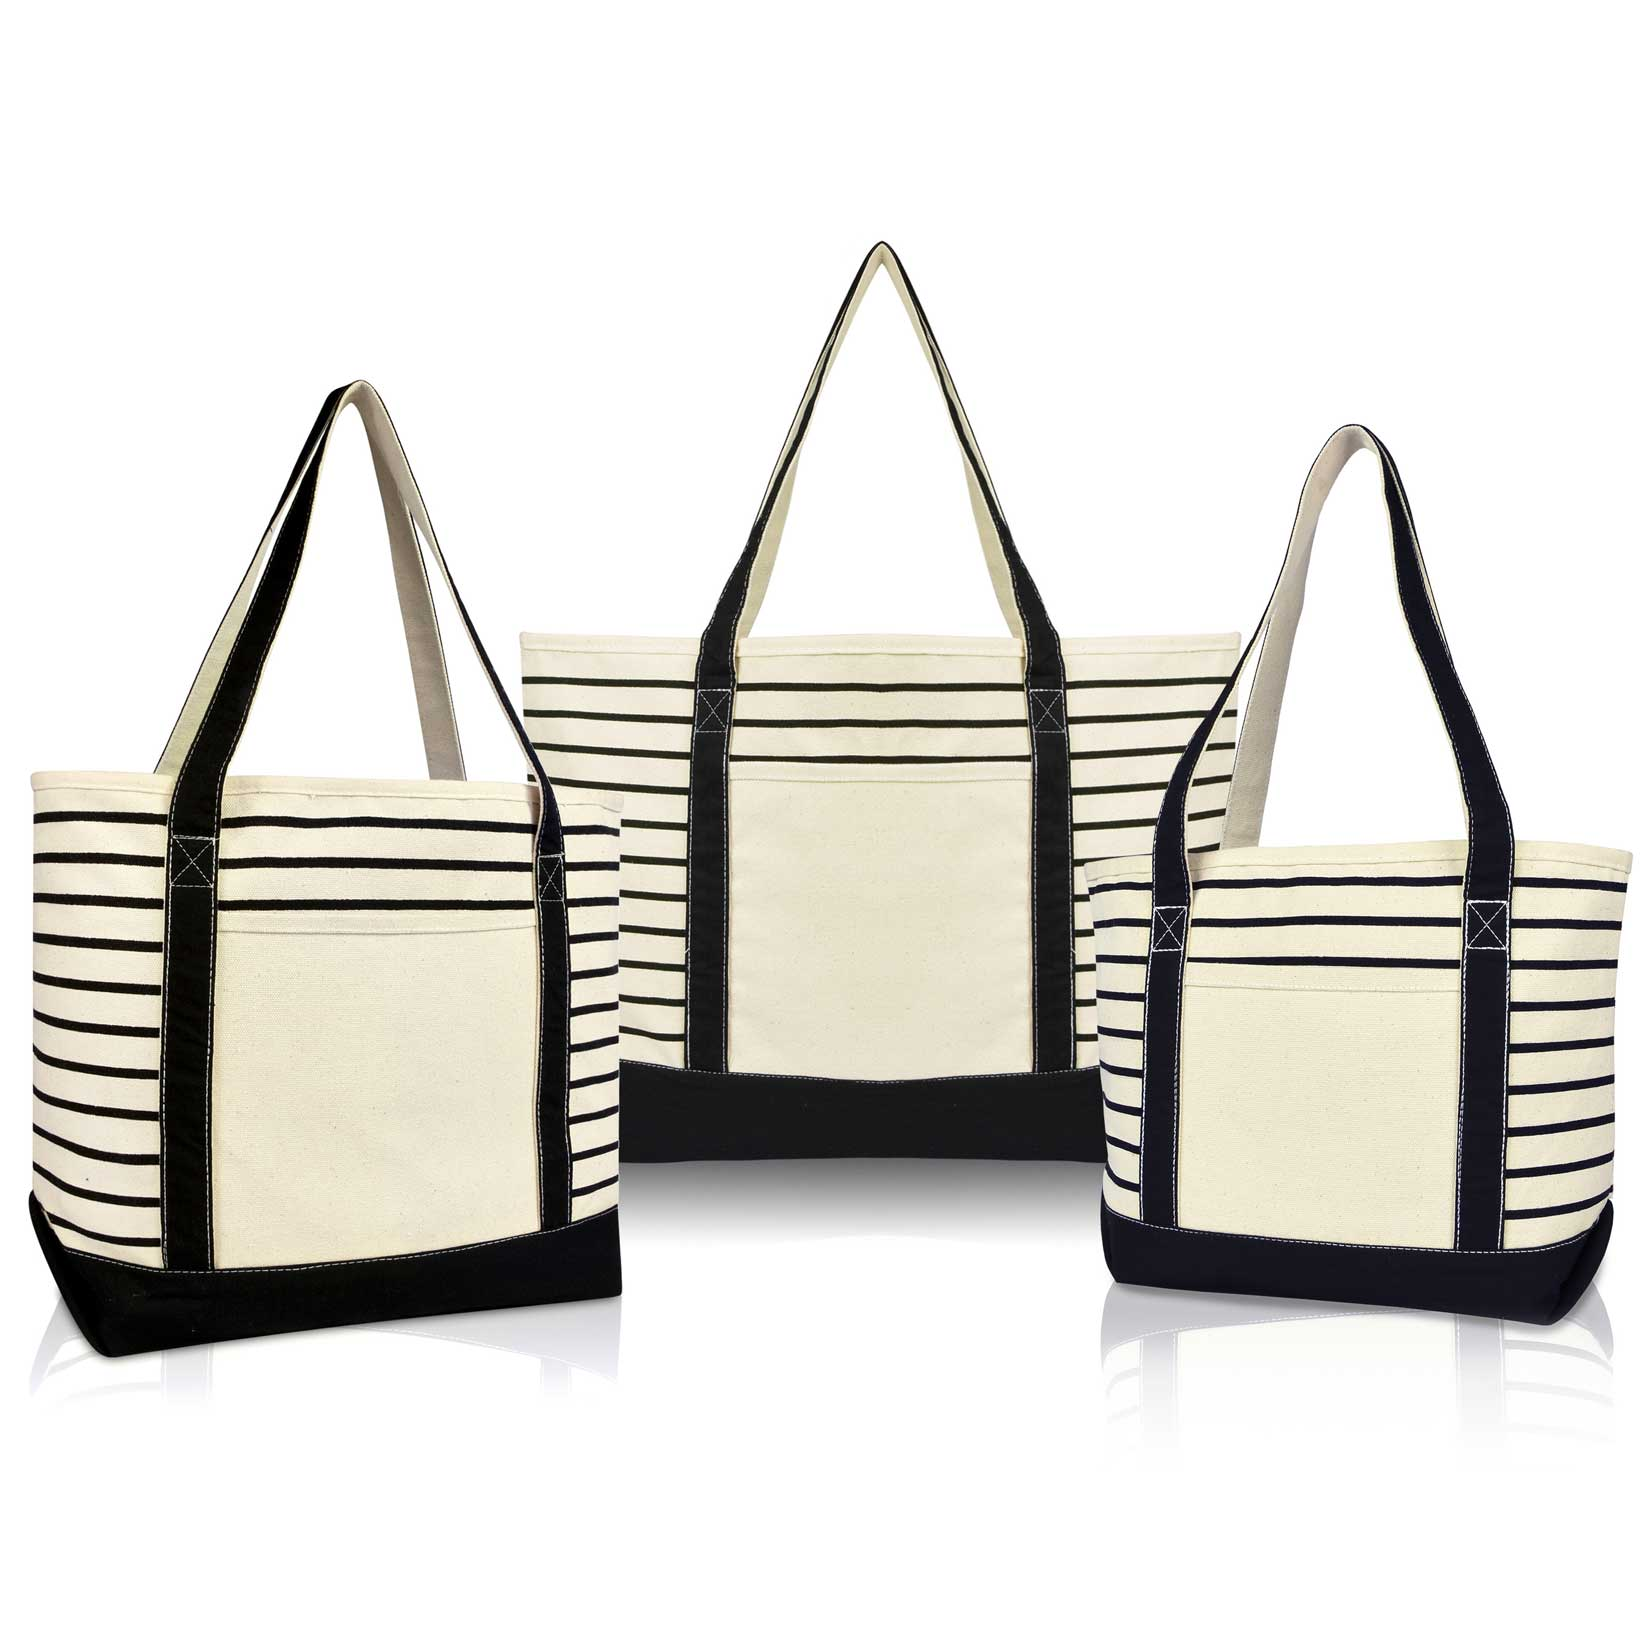 123d556a1 DALIX Stripe Tote Shoulder Bag Deluxe Cotton Canvas Set of 3